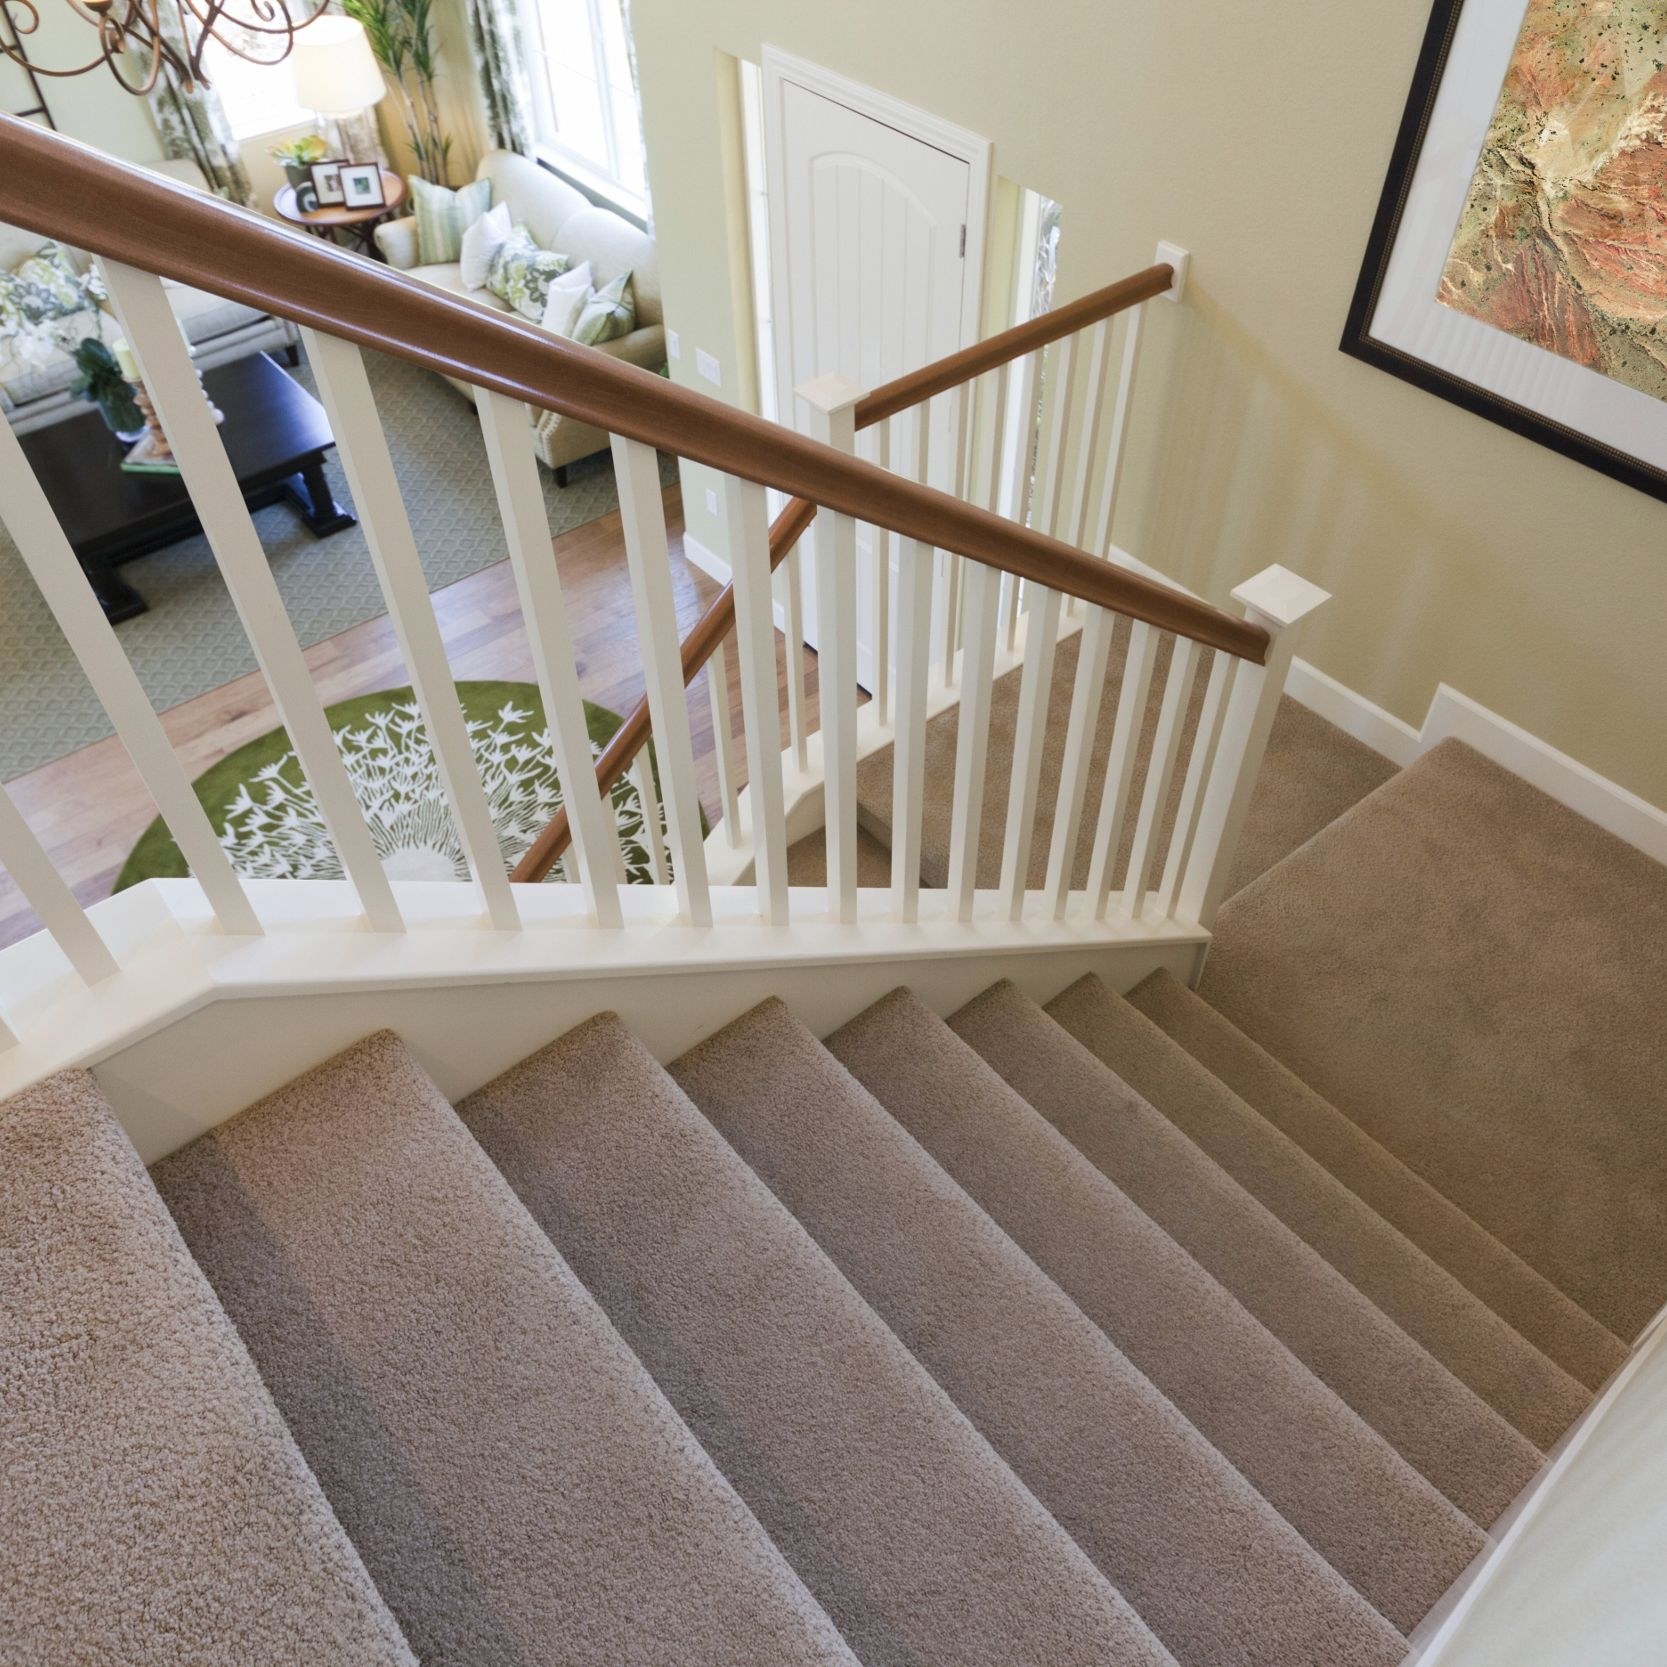 The Best Carpet For Stairs   Cost To Have Stairs Carpeted   Stair Case   Hardwood   Stair Tread   Installation   Carpet Runner